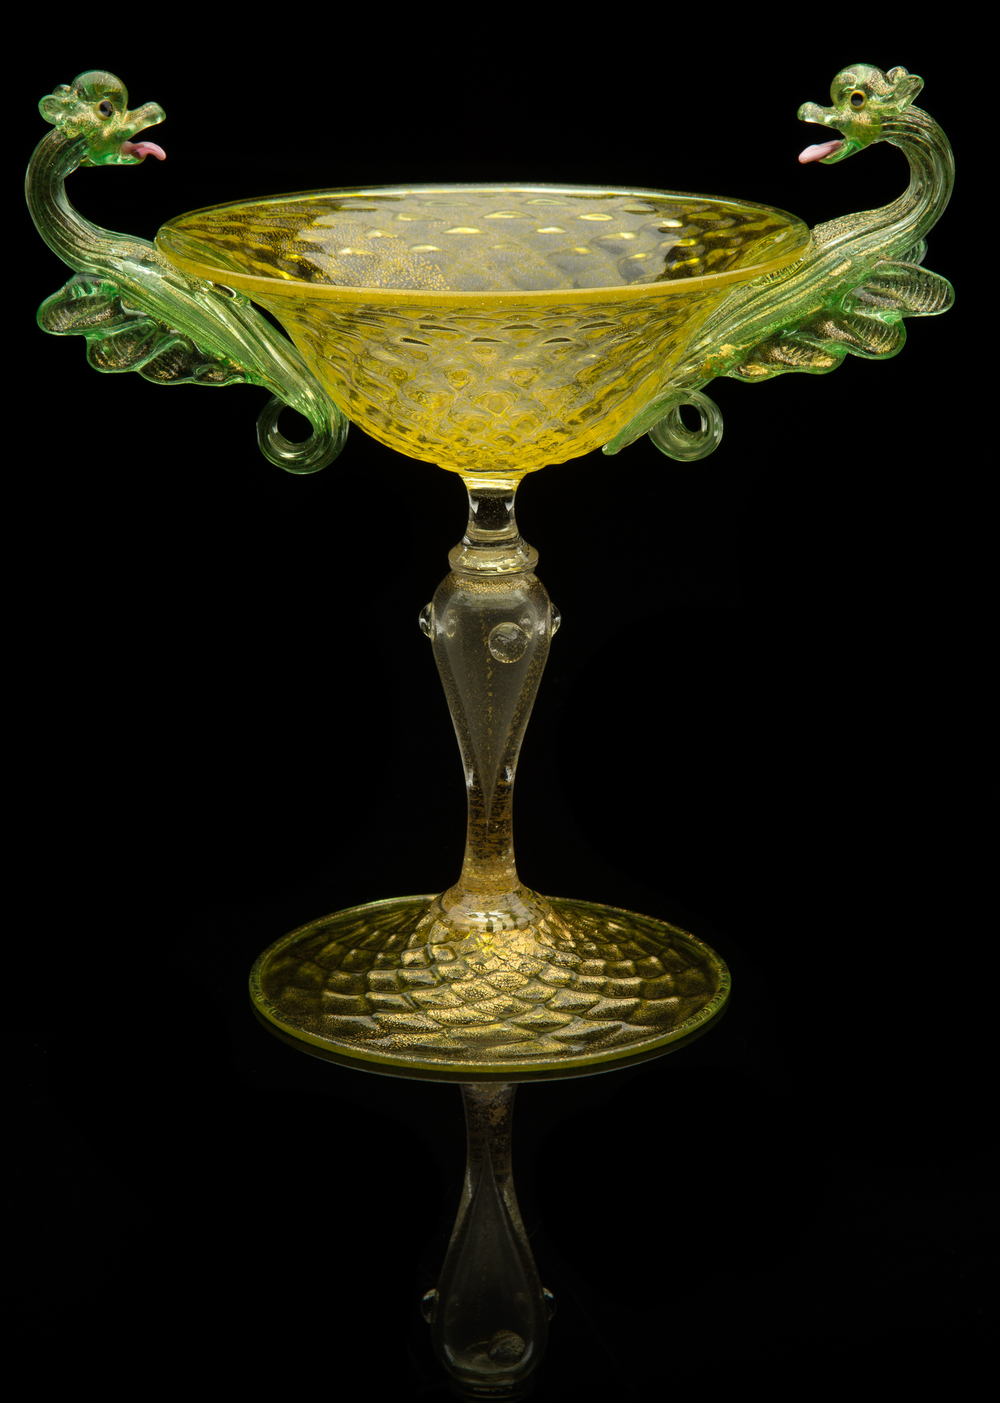 Unknown Venetian,  Chartreuse Serpent Dragon Goblet  (glass), VV.424